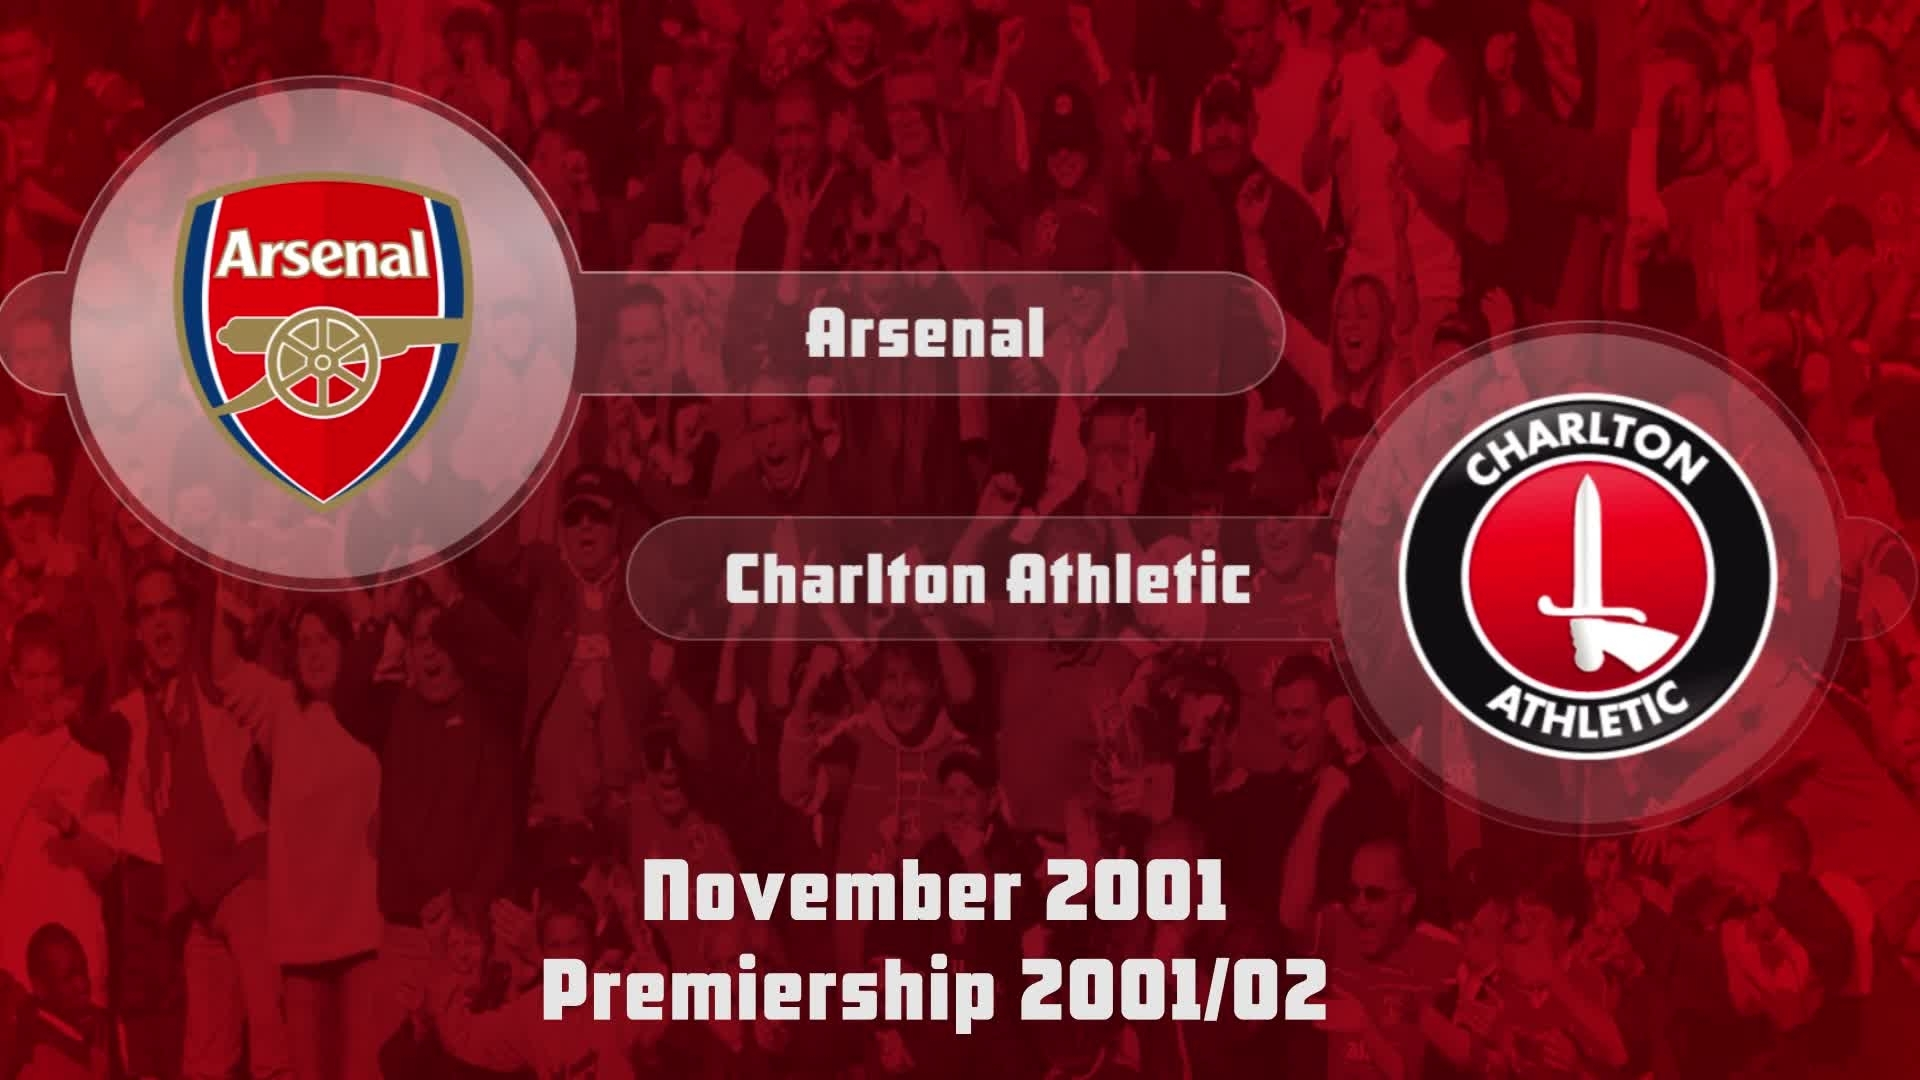 13 HIGHLIGHTS | Arsenal 2 Charlton 4 (Nov 2001)